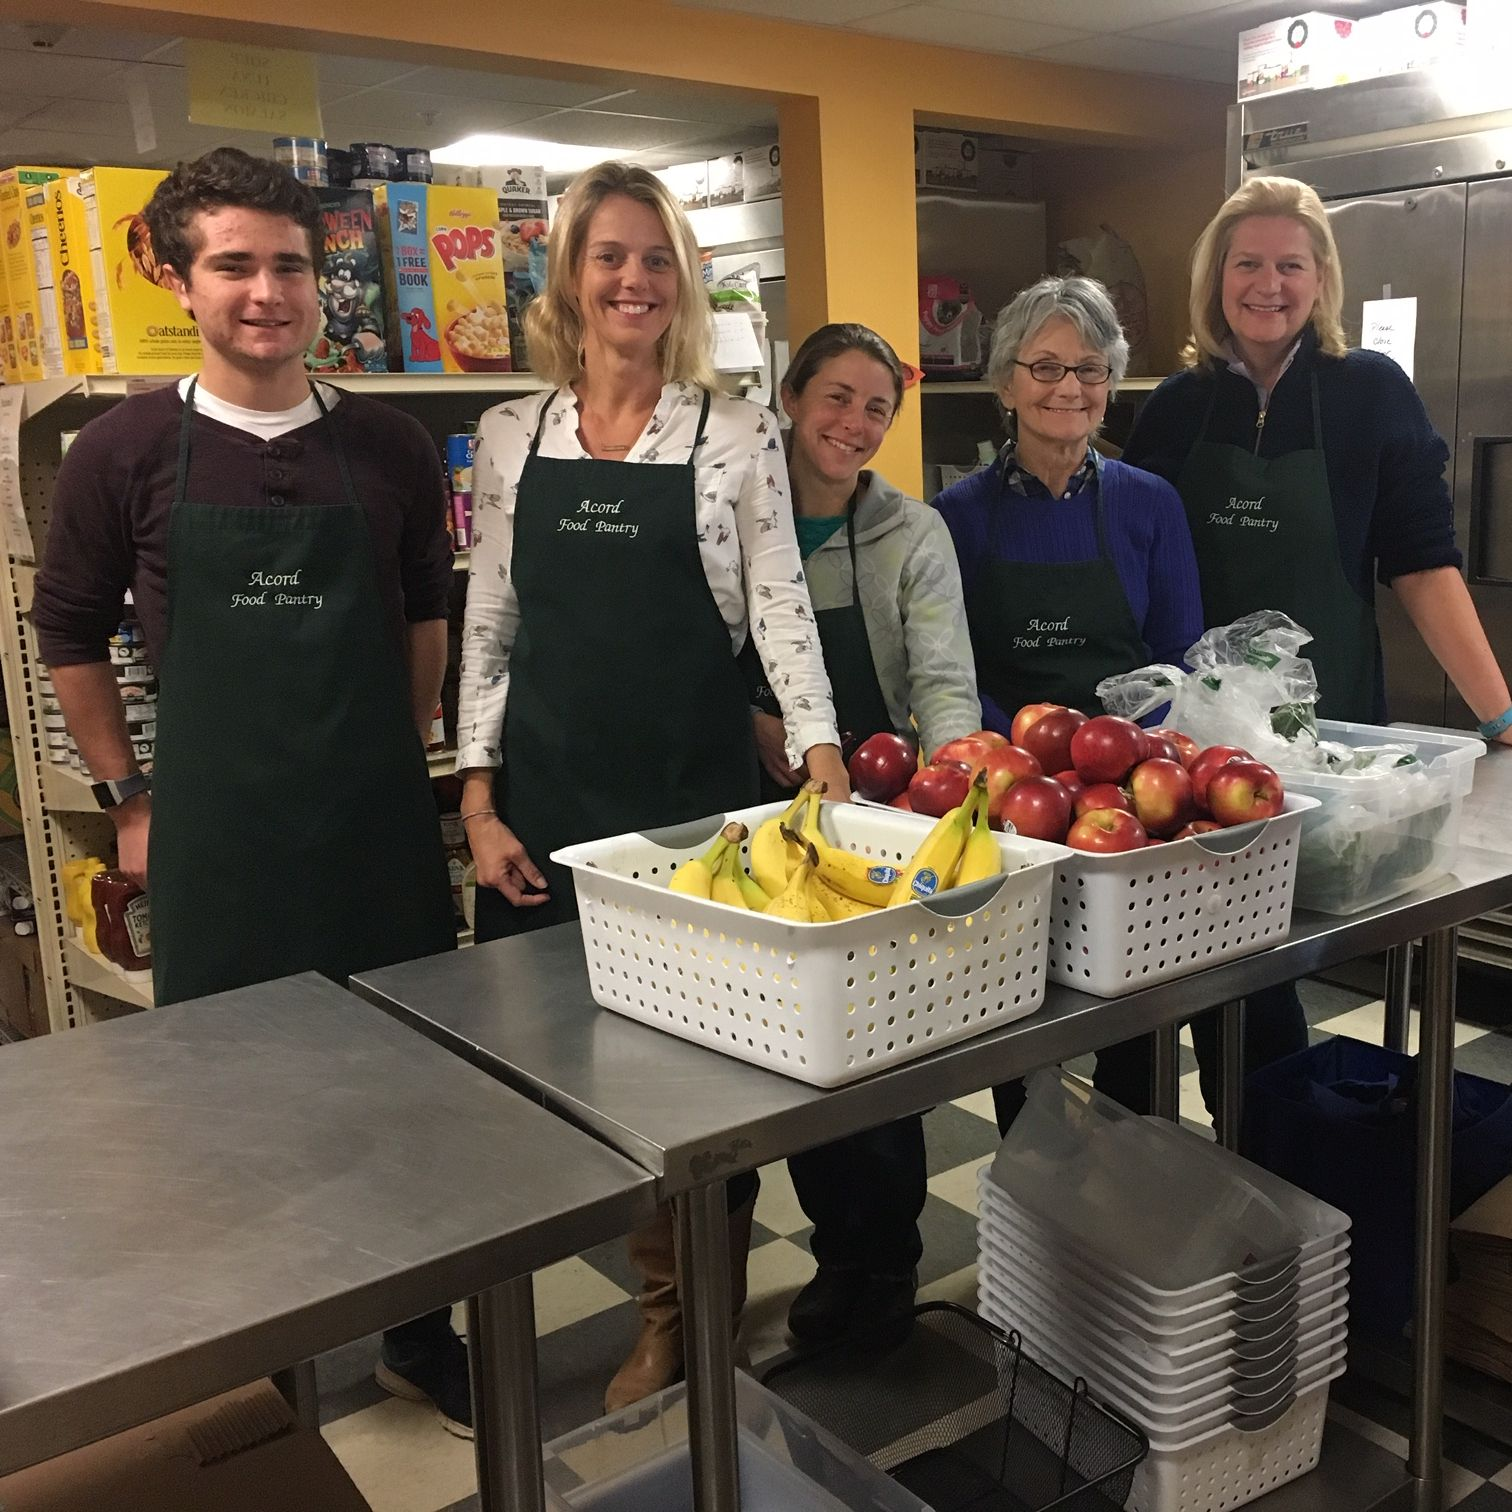 Client visits to the pantry increased an average of 8% in 2018. This includes 99 families who visited Acord for the first time. -